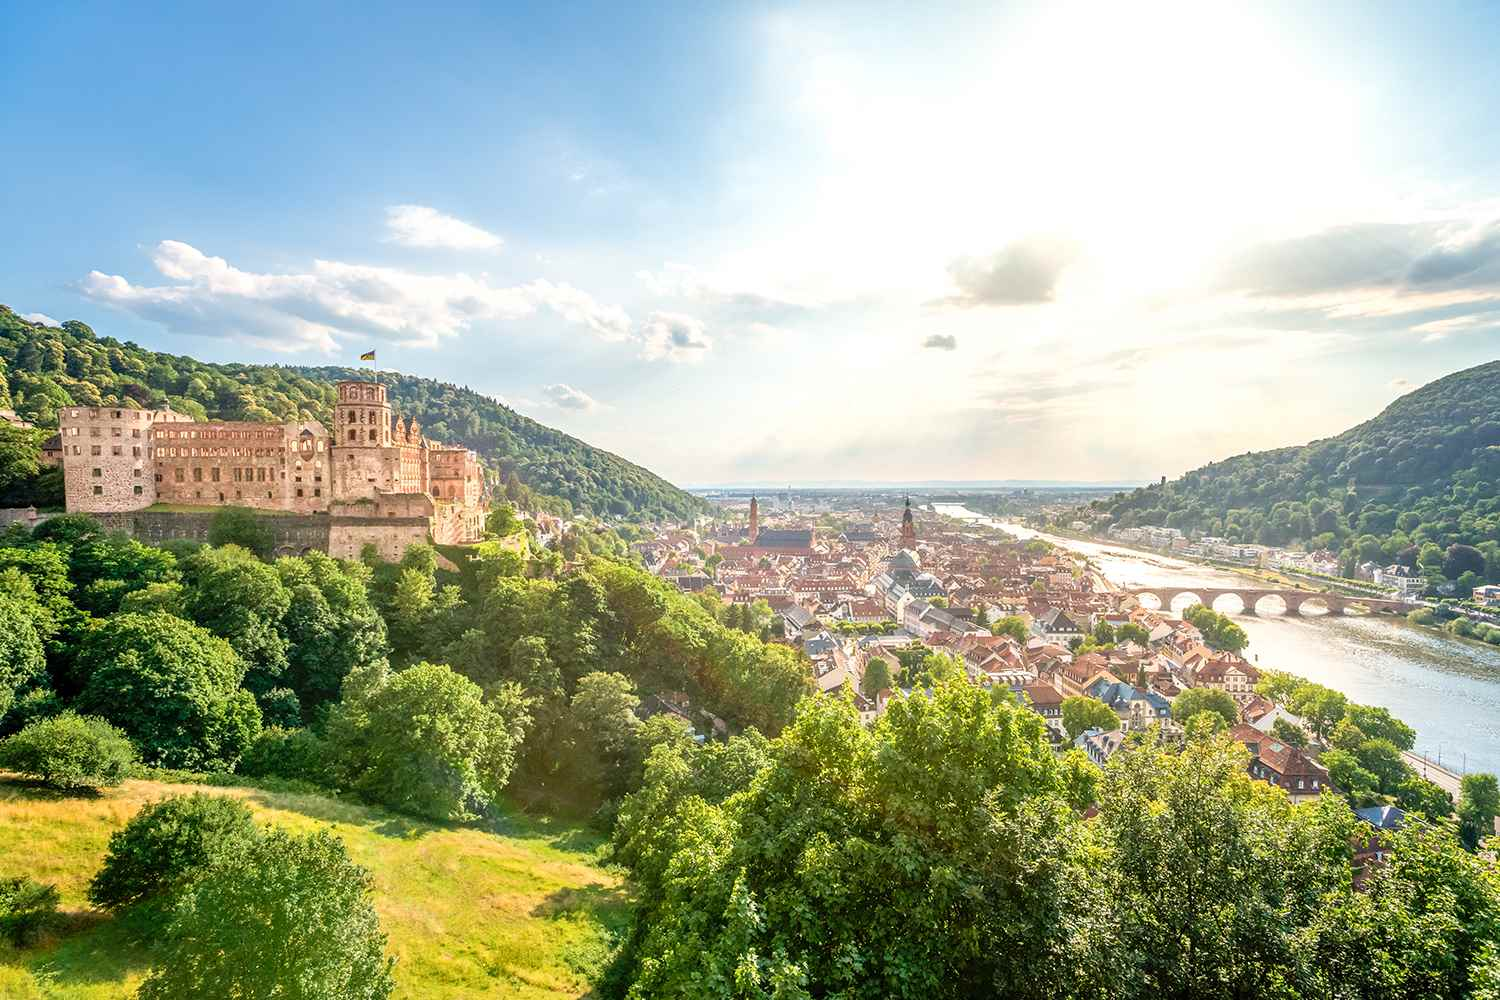 /Assets/CruiseGallery/Thumb/enchantingrhine_GERMANY_Heidelberg_PanoramicView_ss_379280509_gallery.jpg